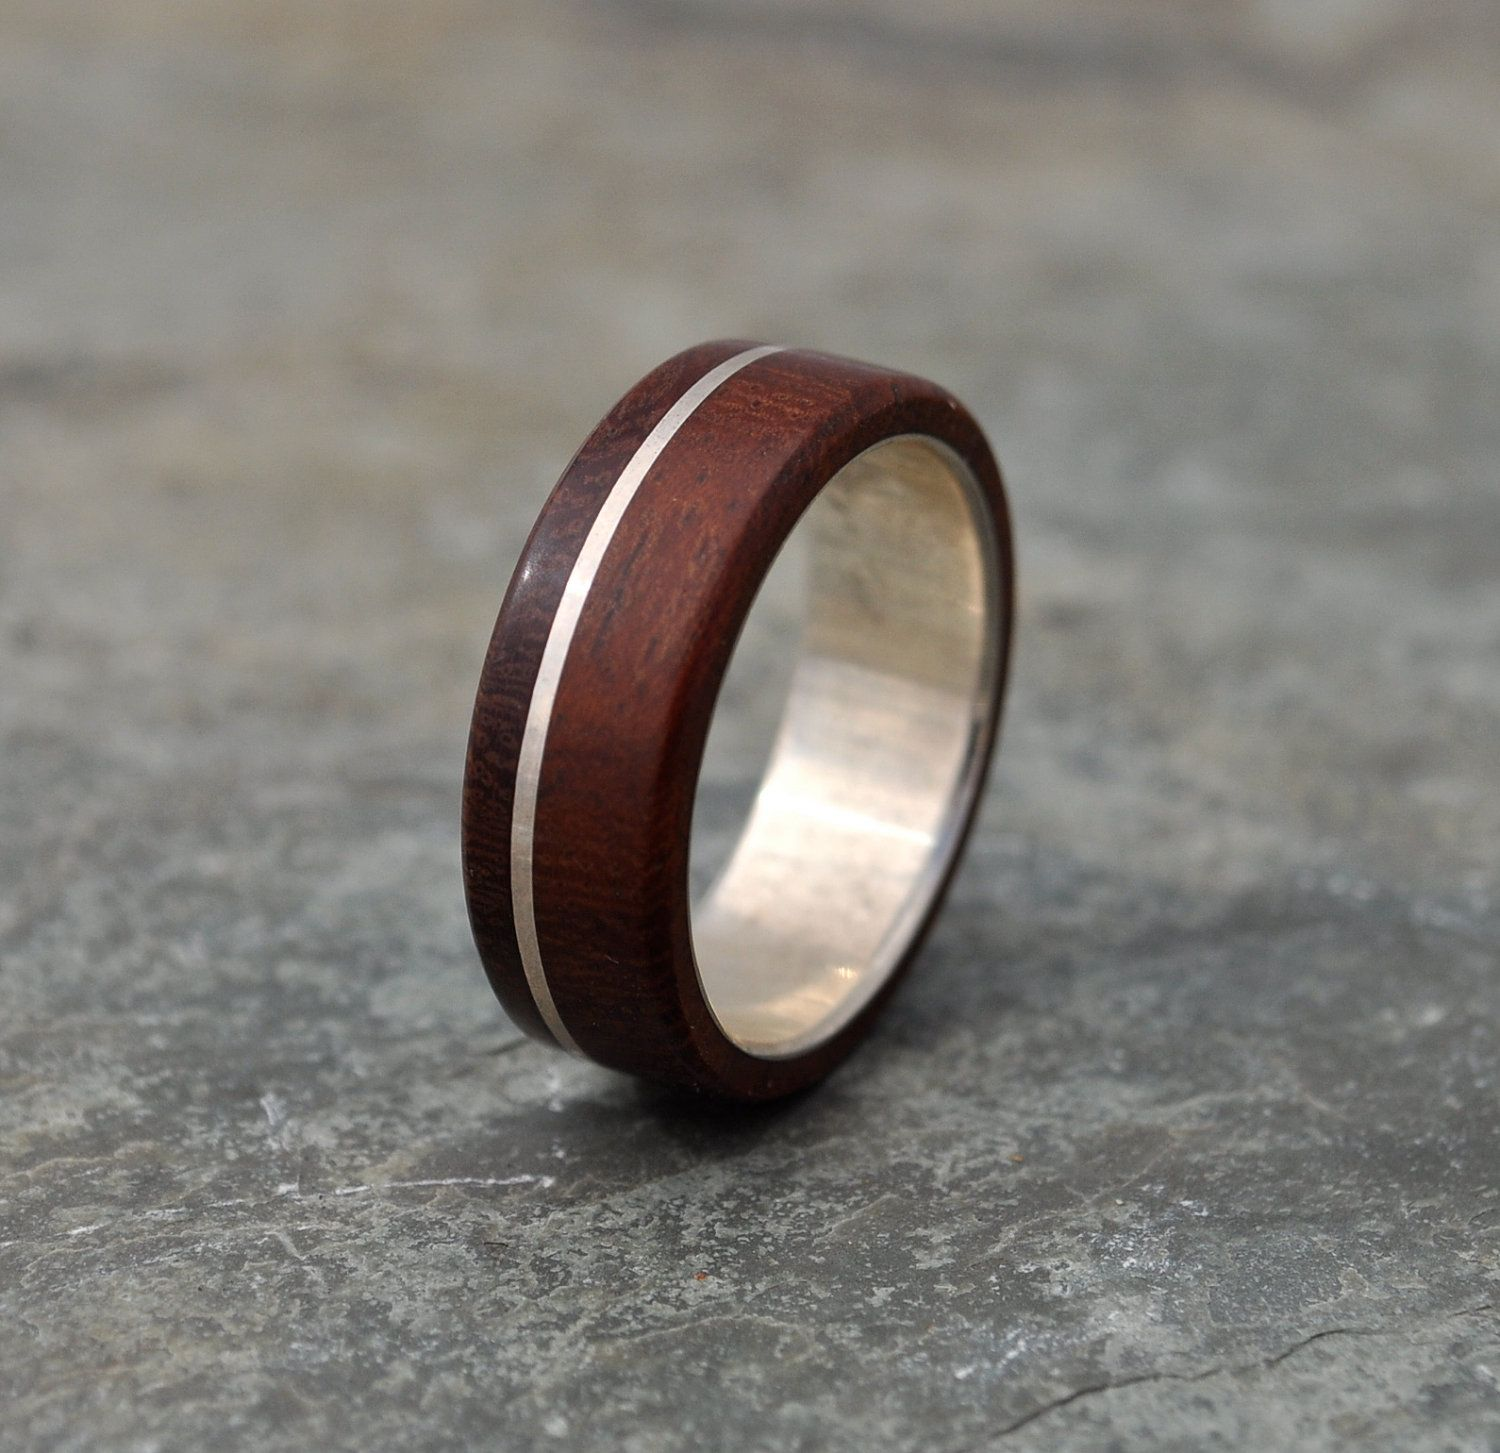 edit sustainable in rings product ellenwood ethical shakti gold wedding aria fairtrade ring